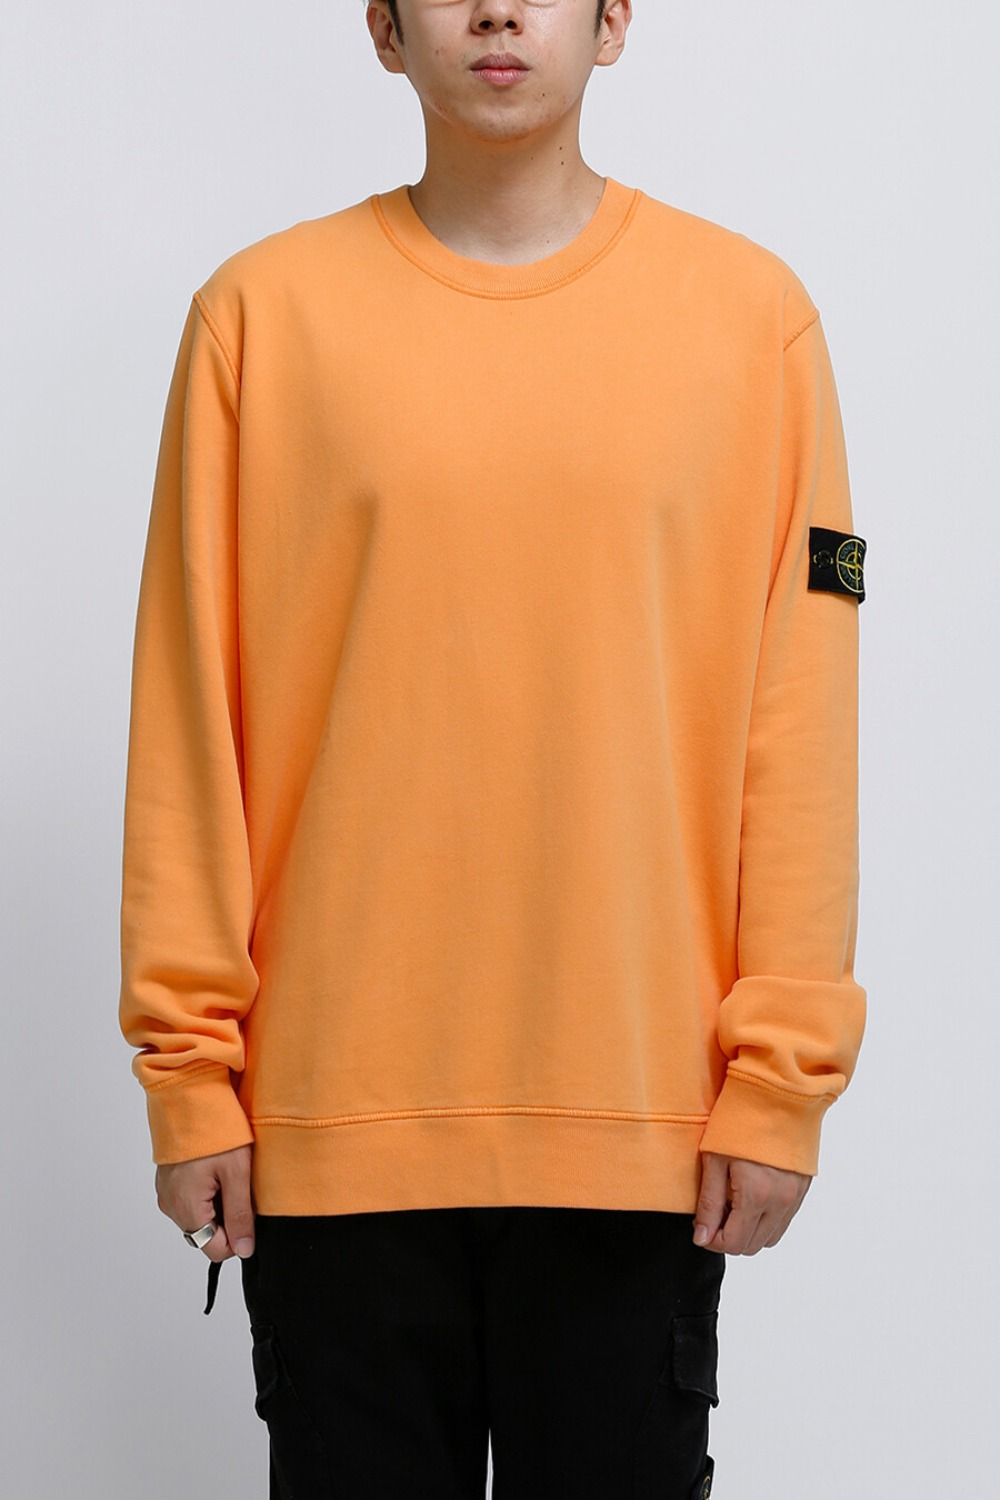 BRUSHED COTTON FLEECE GARMENT DYED SWEATSHIRT ORANGE